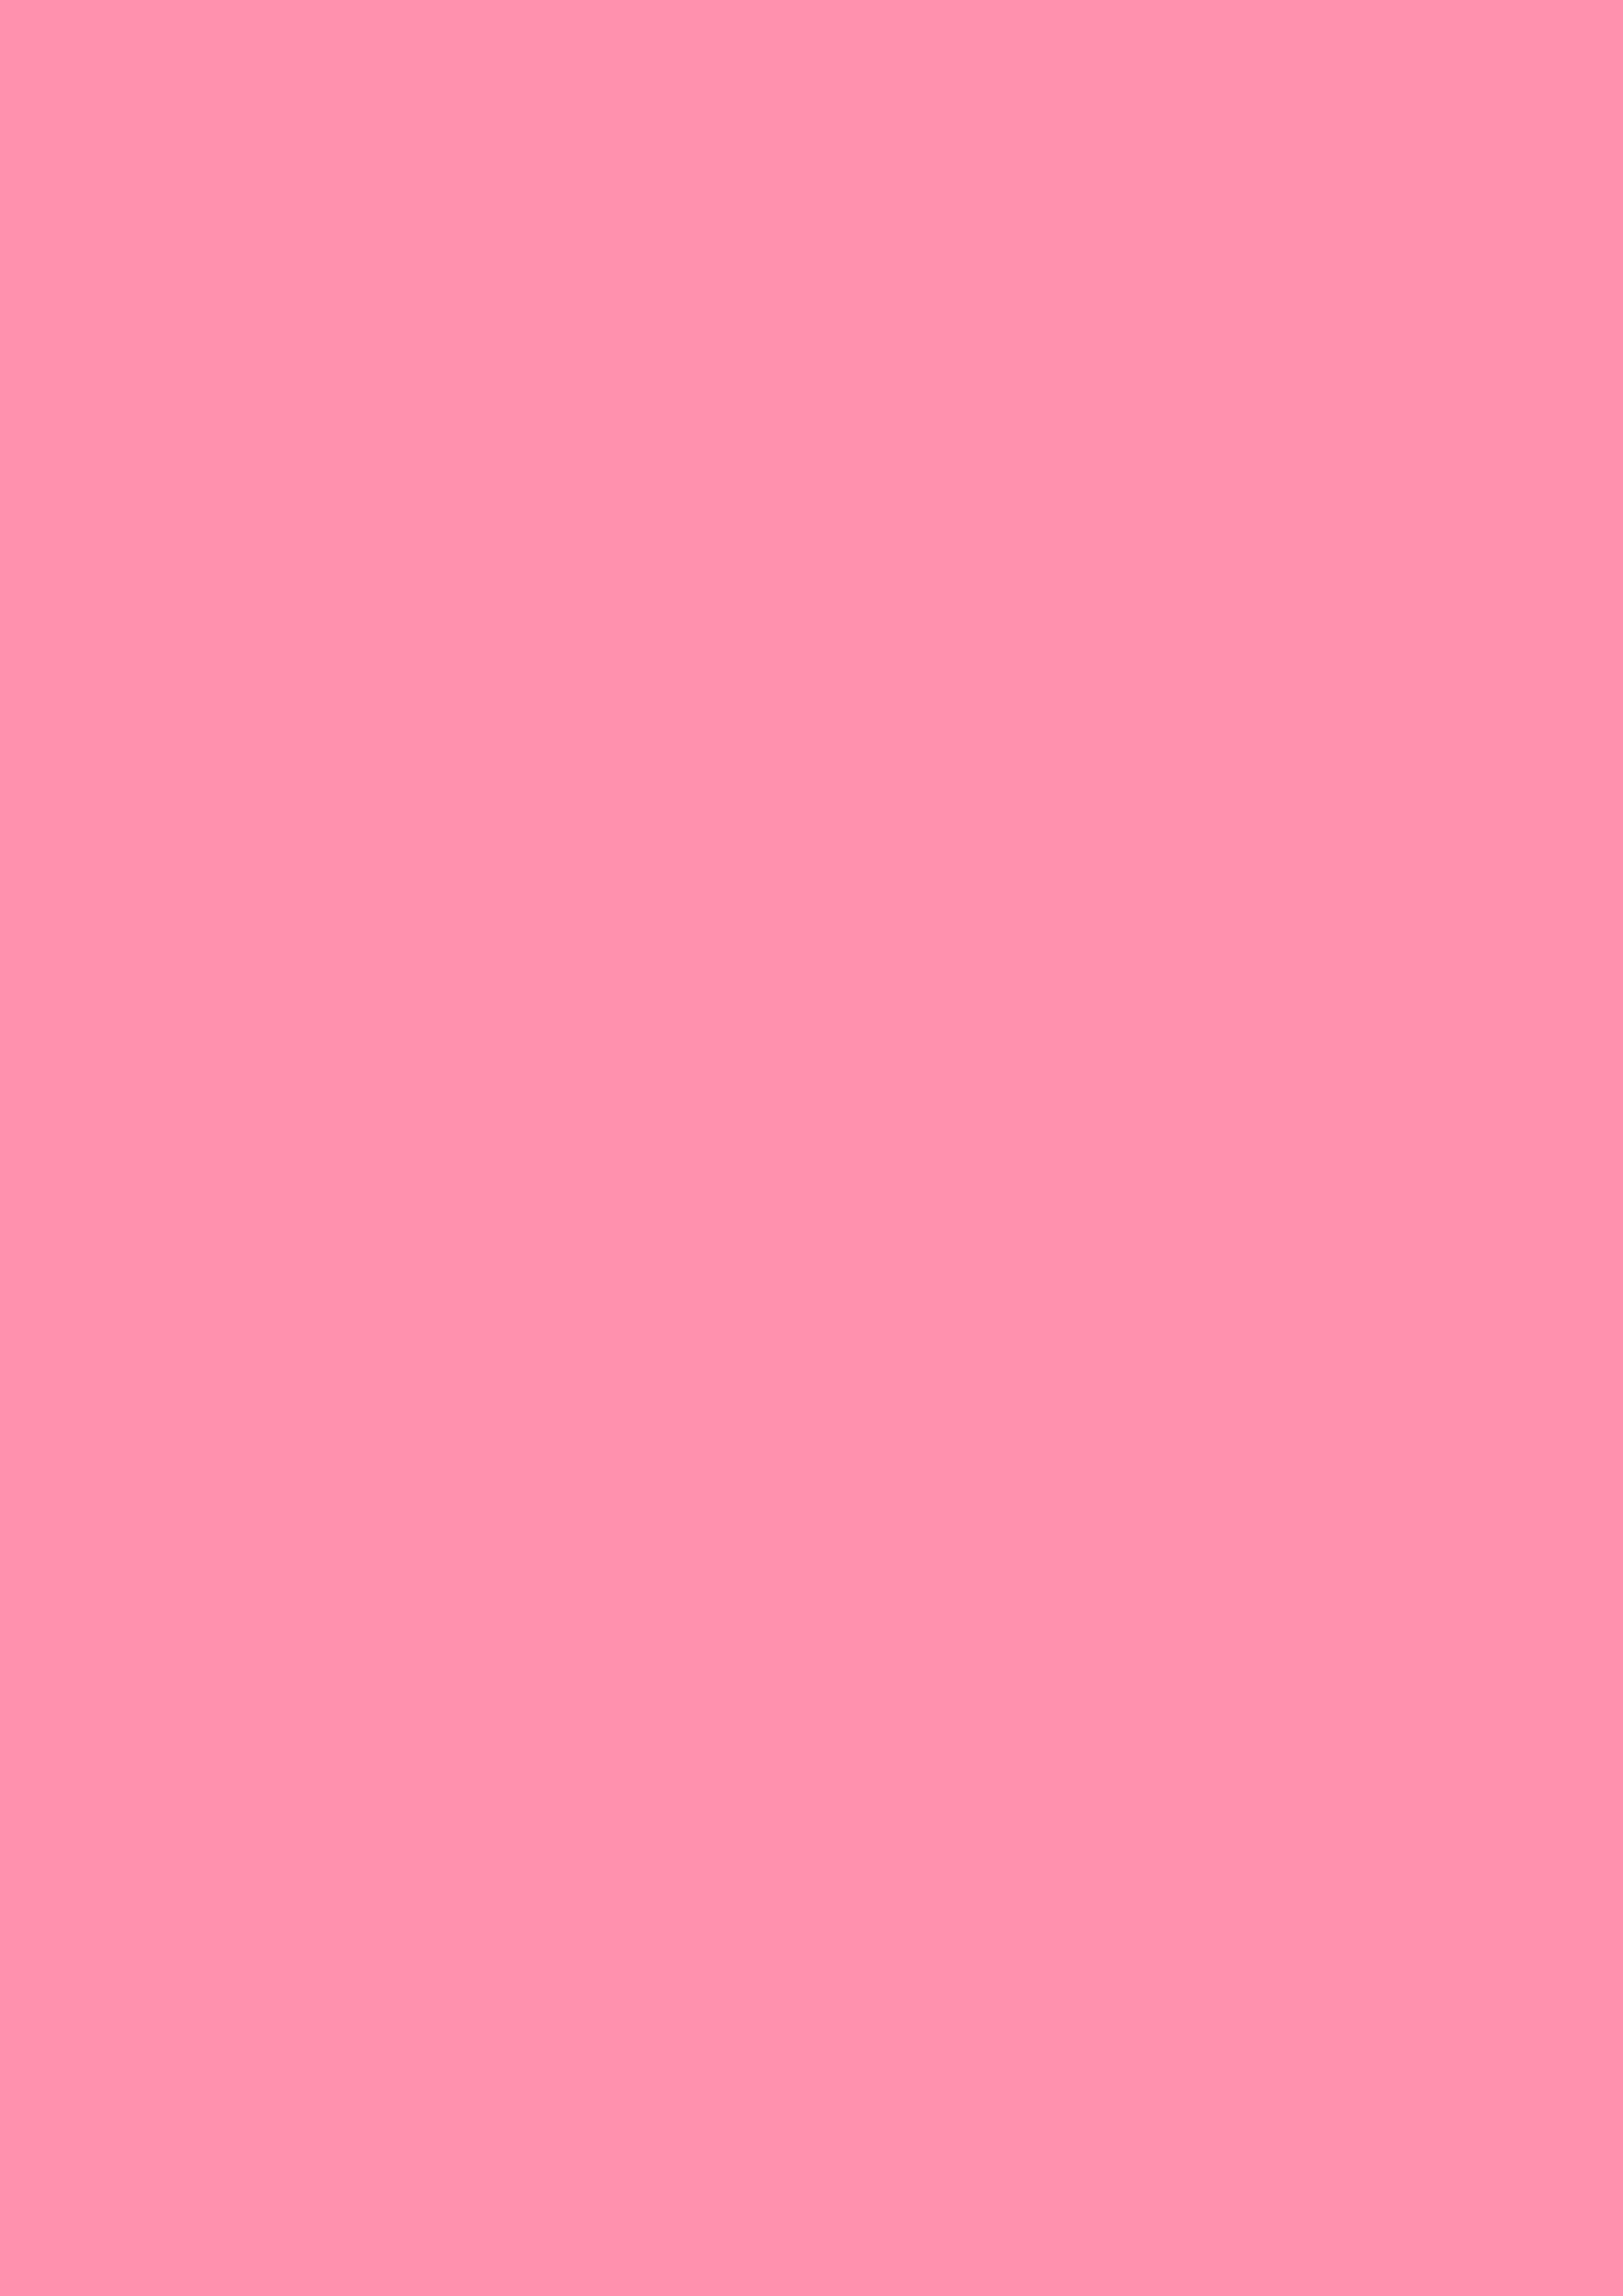 2480x3508 Schauss Pink Solid Color Background